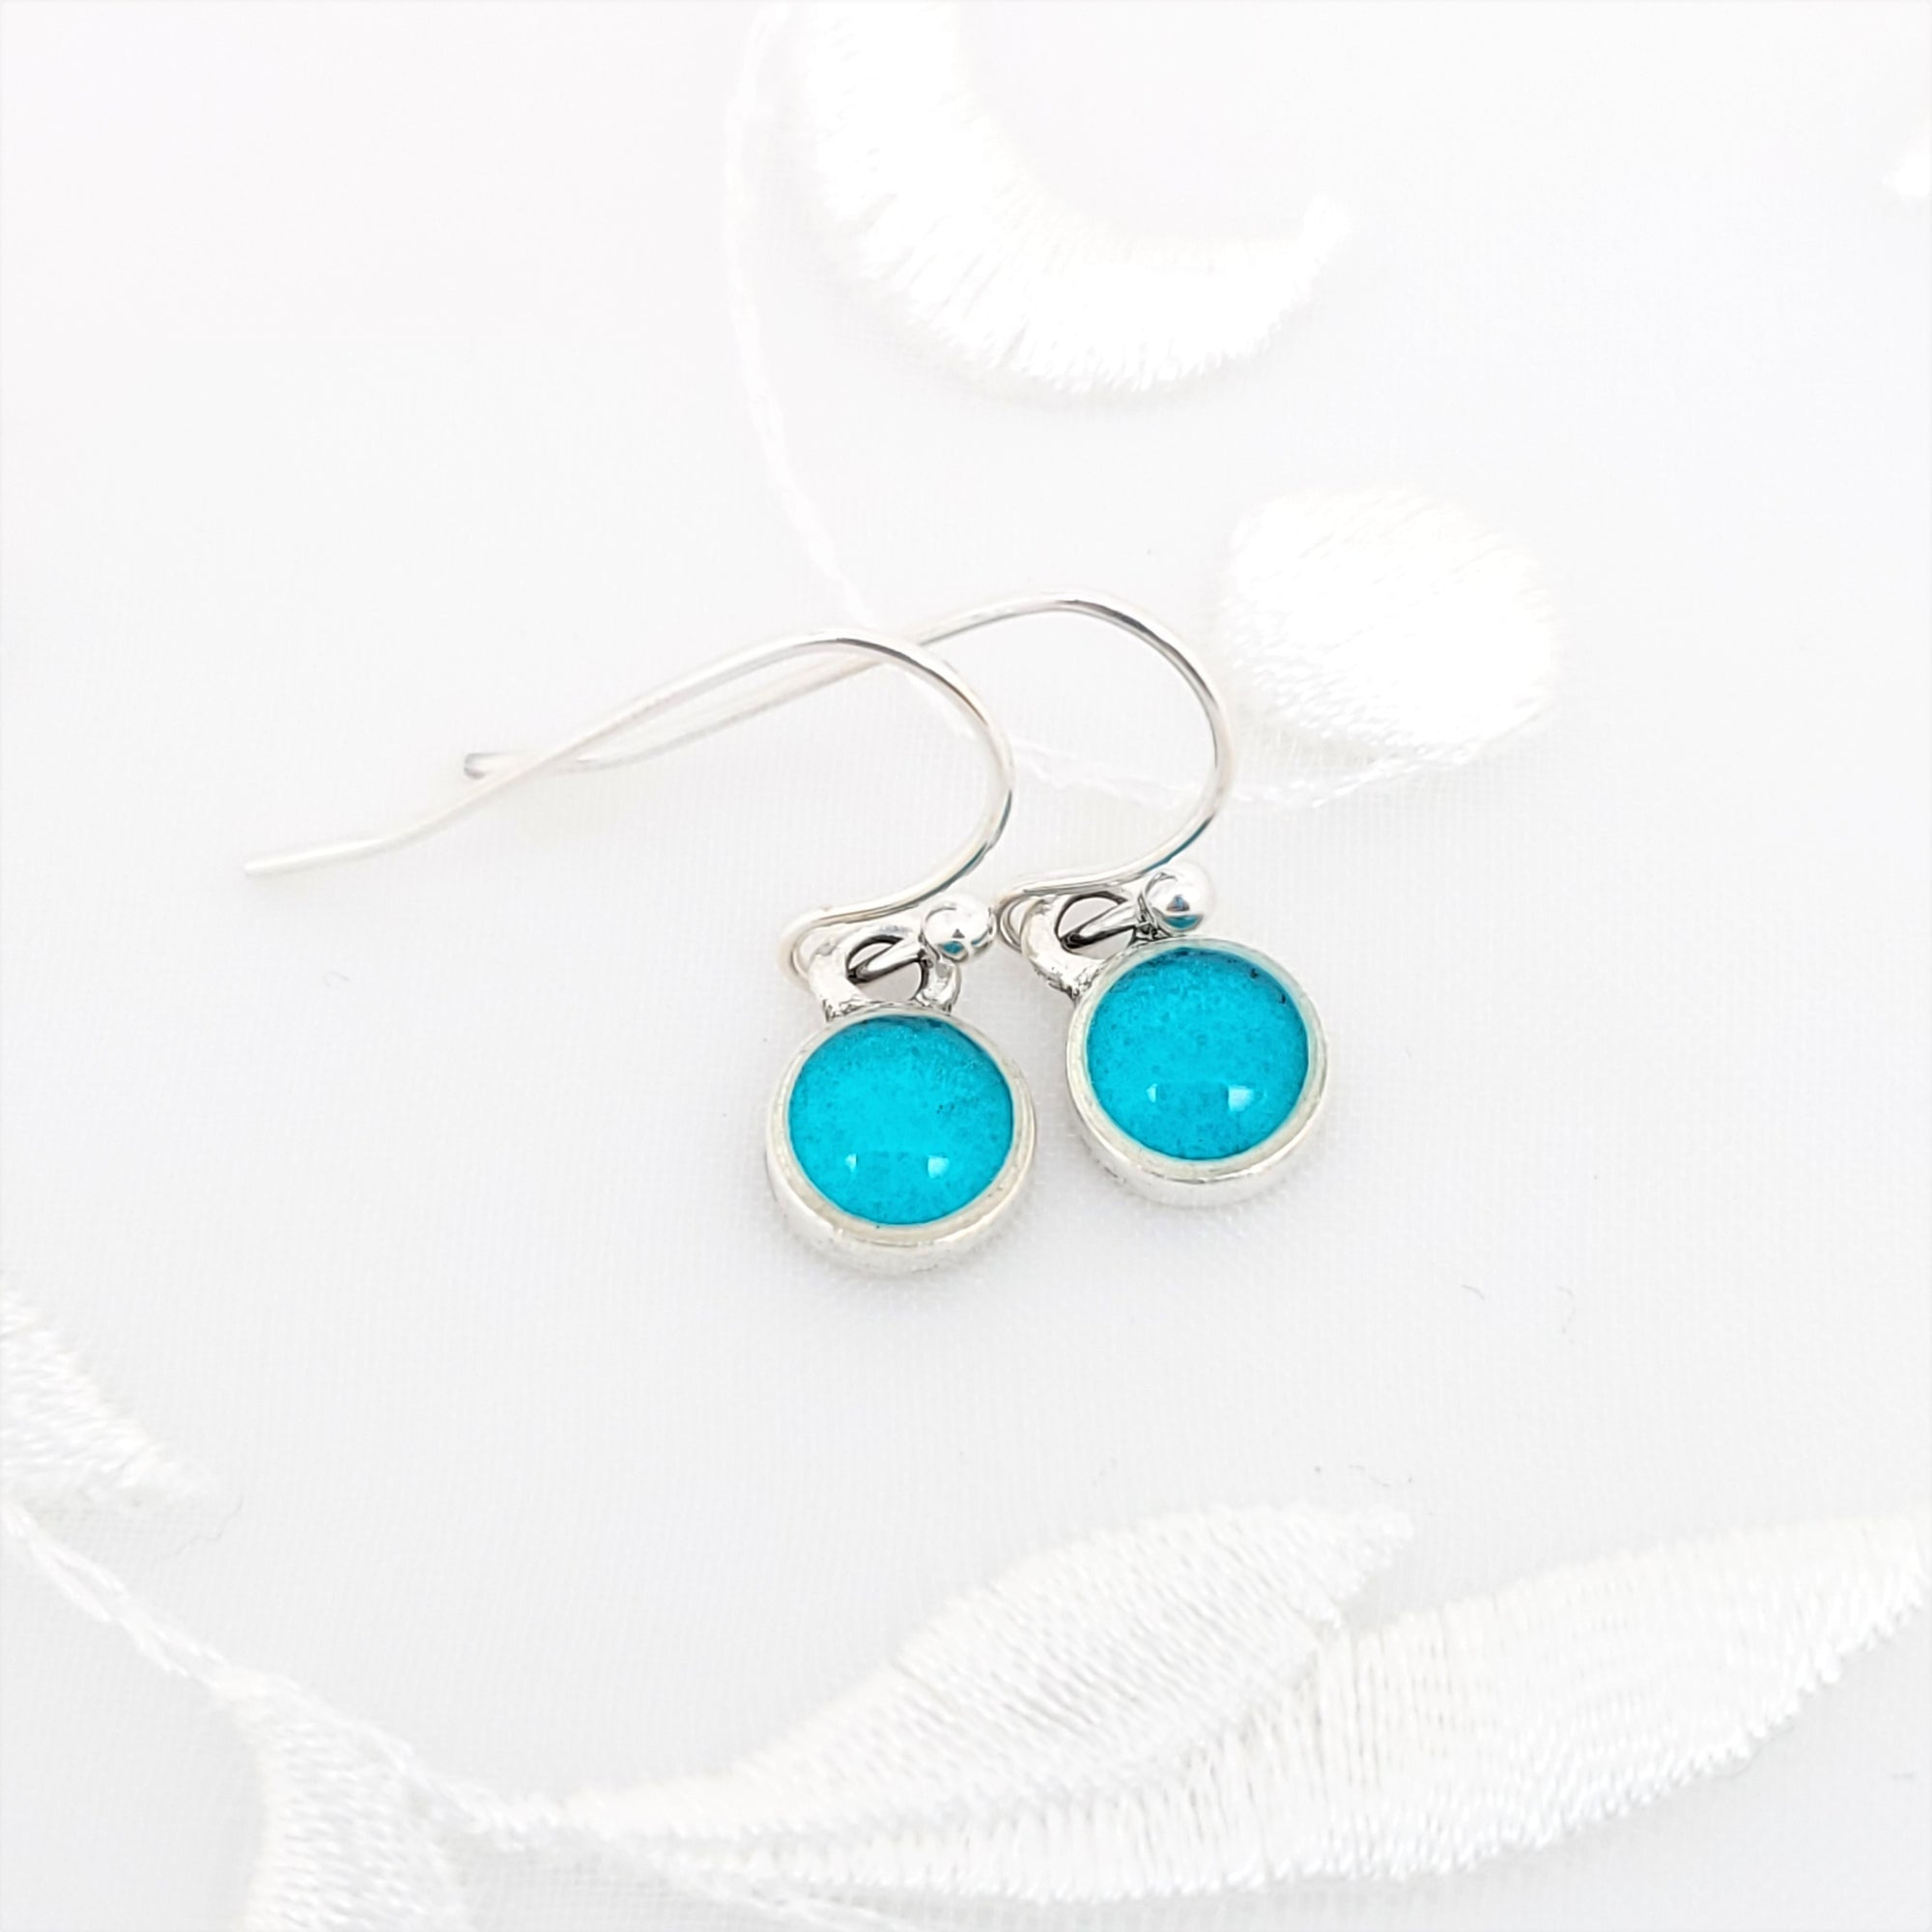 Antique Silver Tiny Round Earrings with Transparent Sky Blue Resin